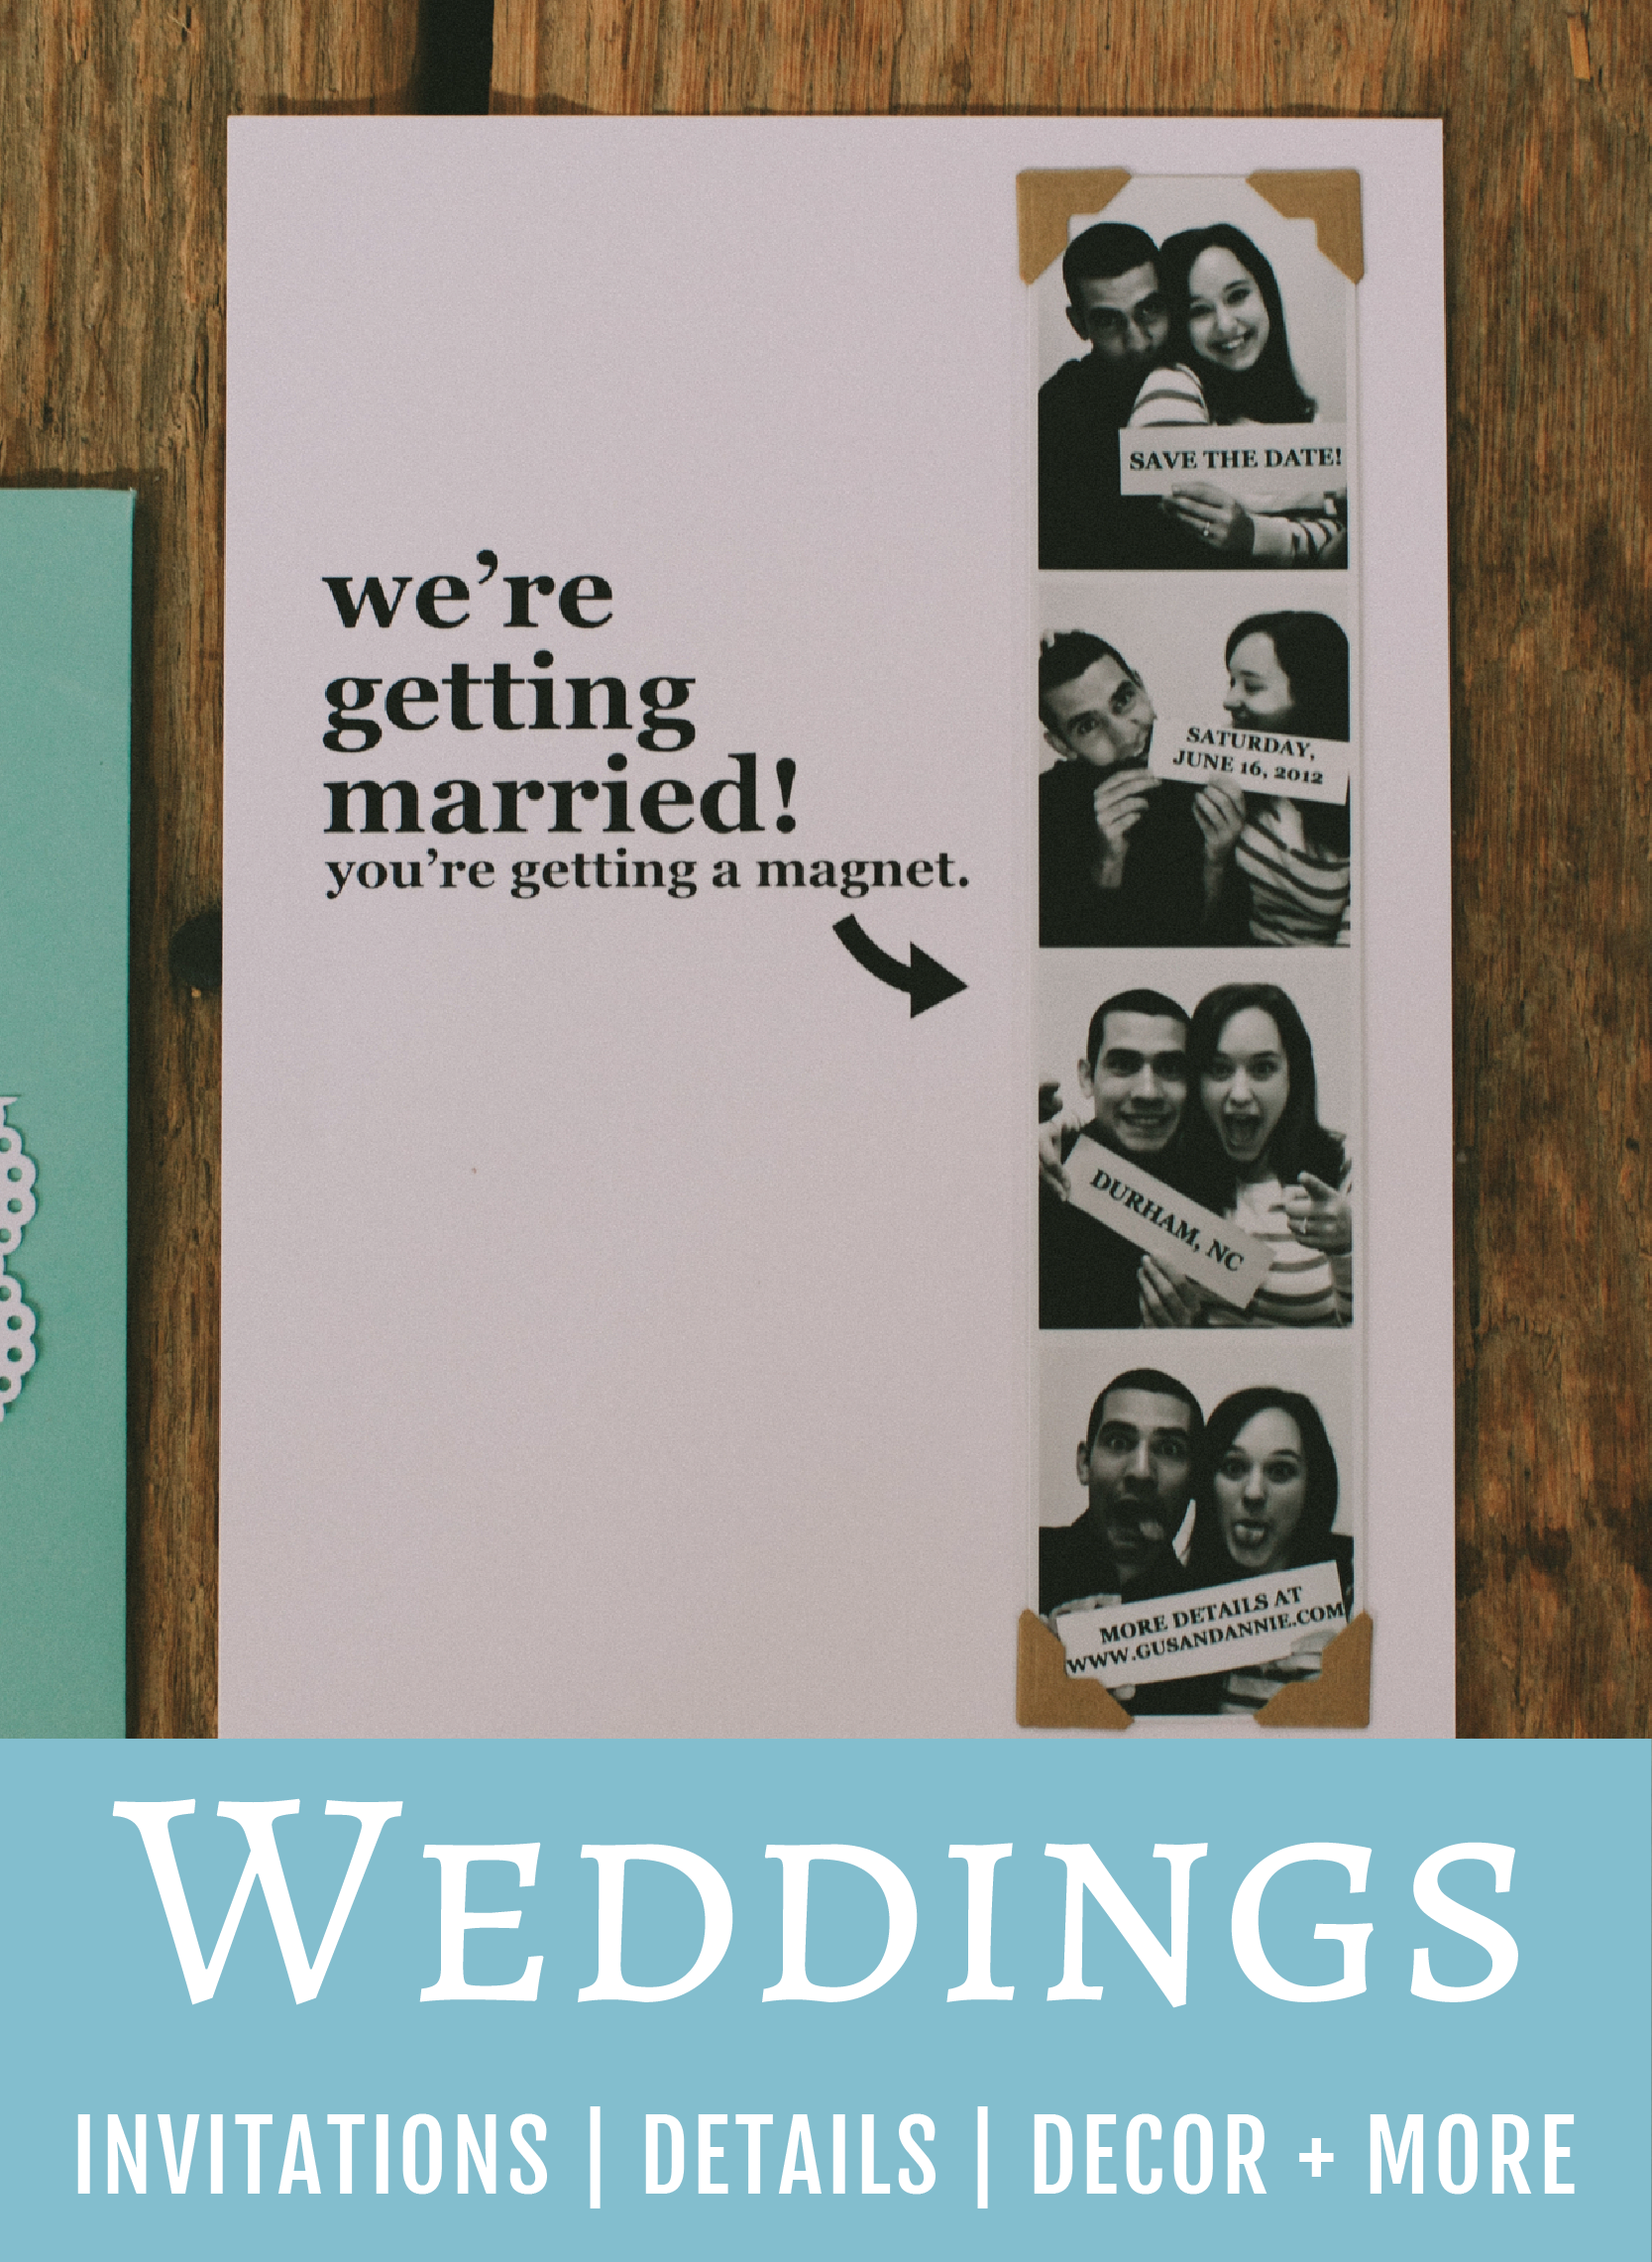 Greatest Story Weddings: Invitations, Details, Decor and More For Weddings Based On Your Love Story